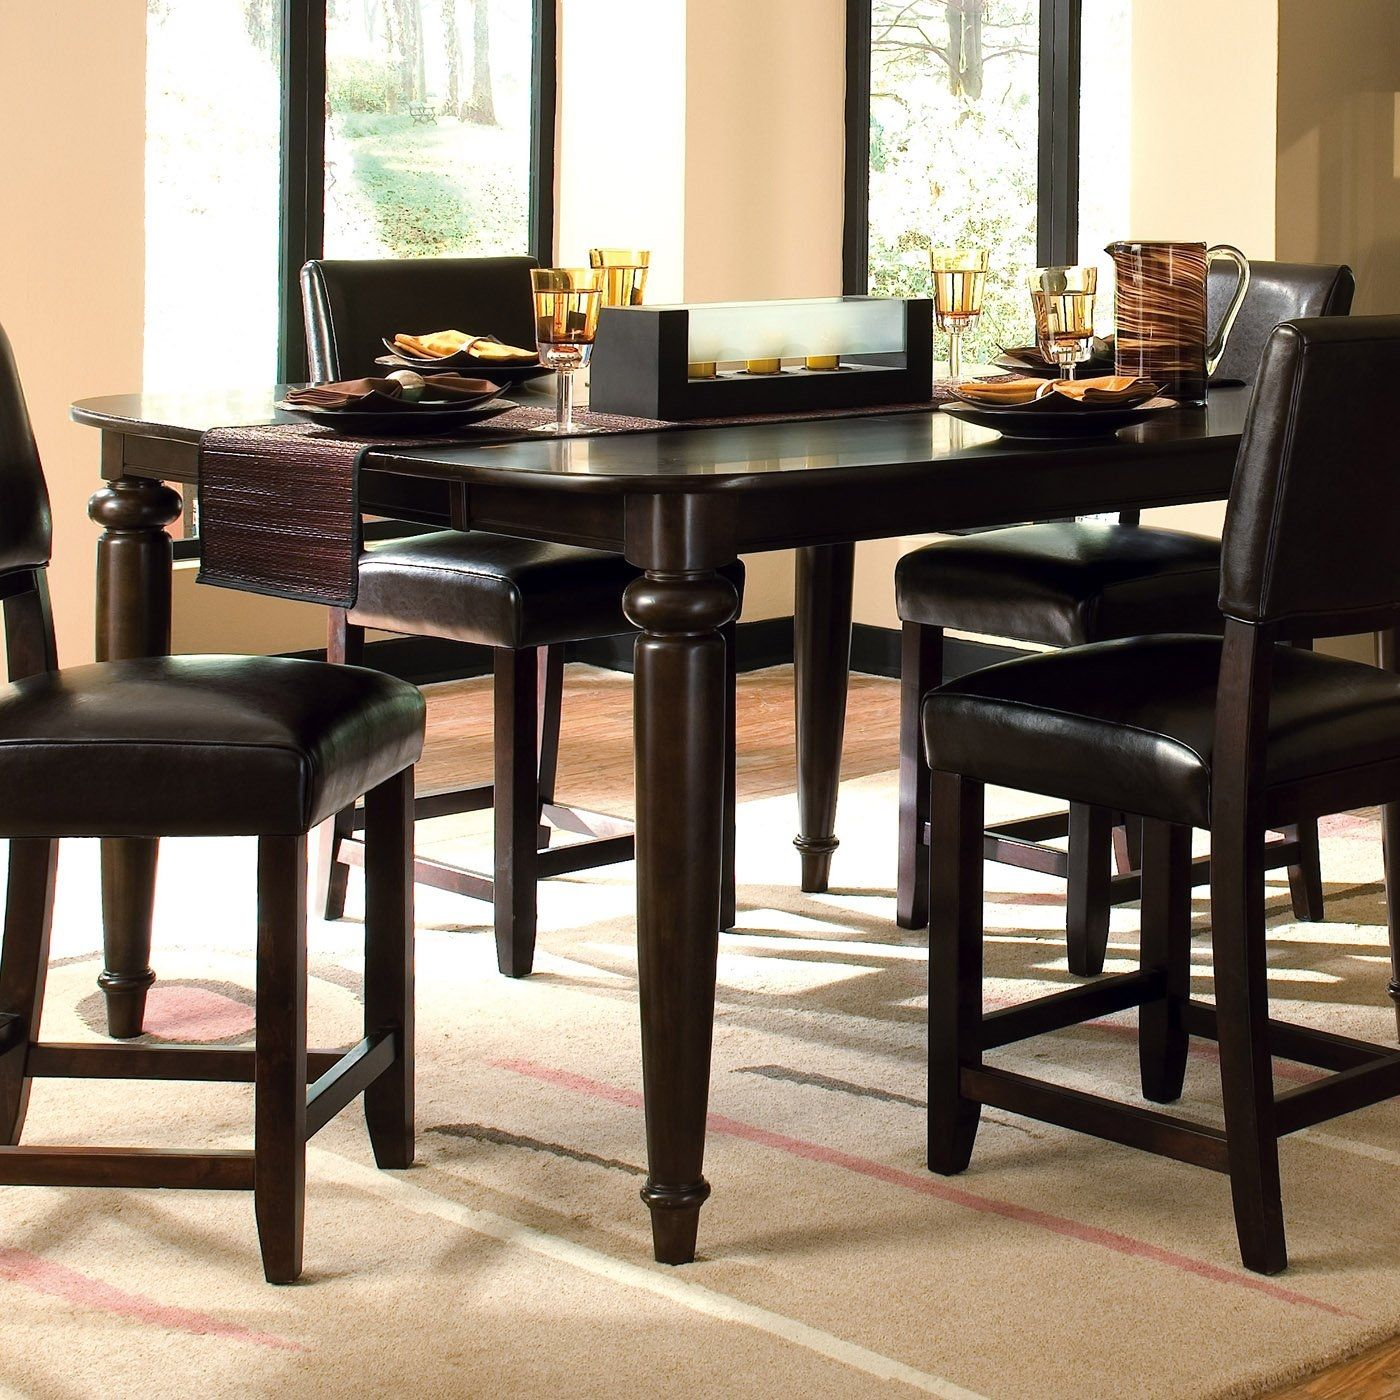 High Round Kitchen Table And Chairs Round Kitchen Table Set High Table And Chairs Round Kitchen Table